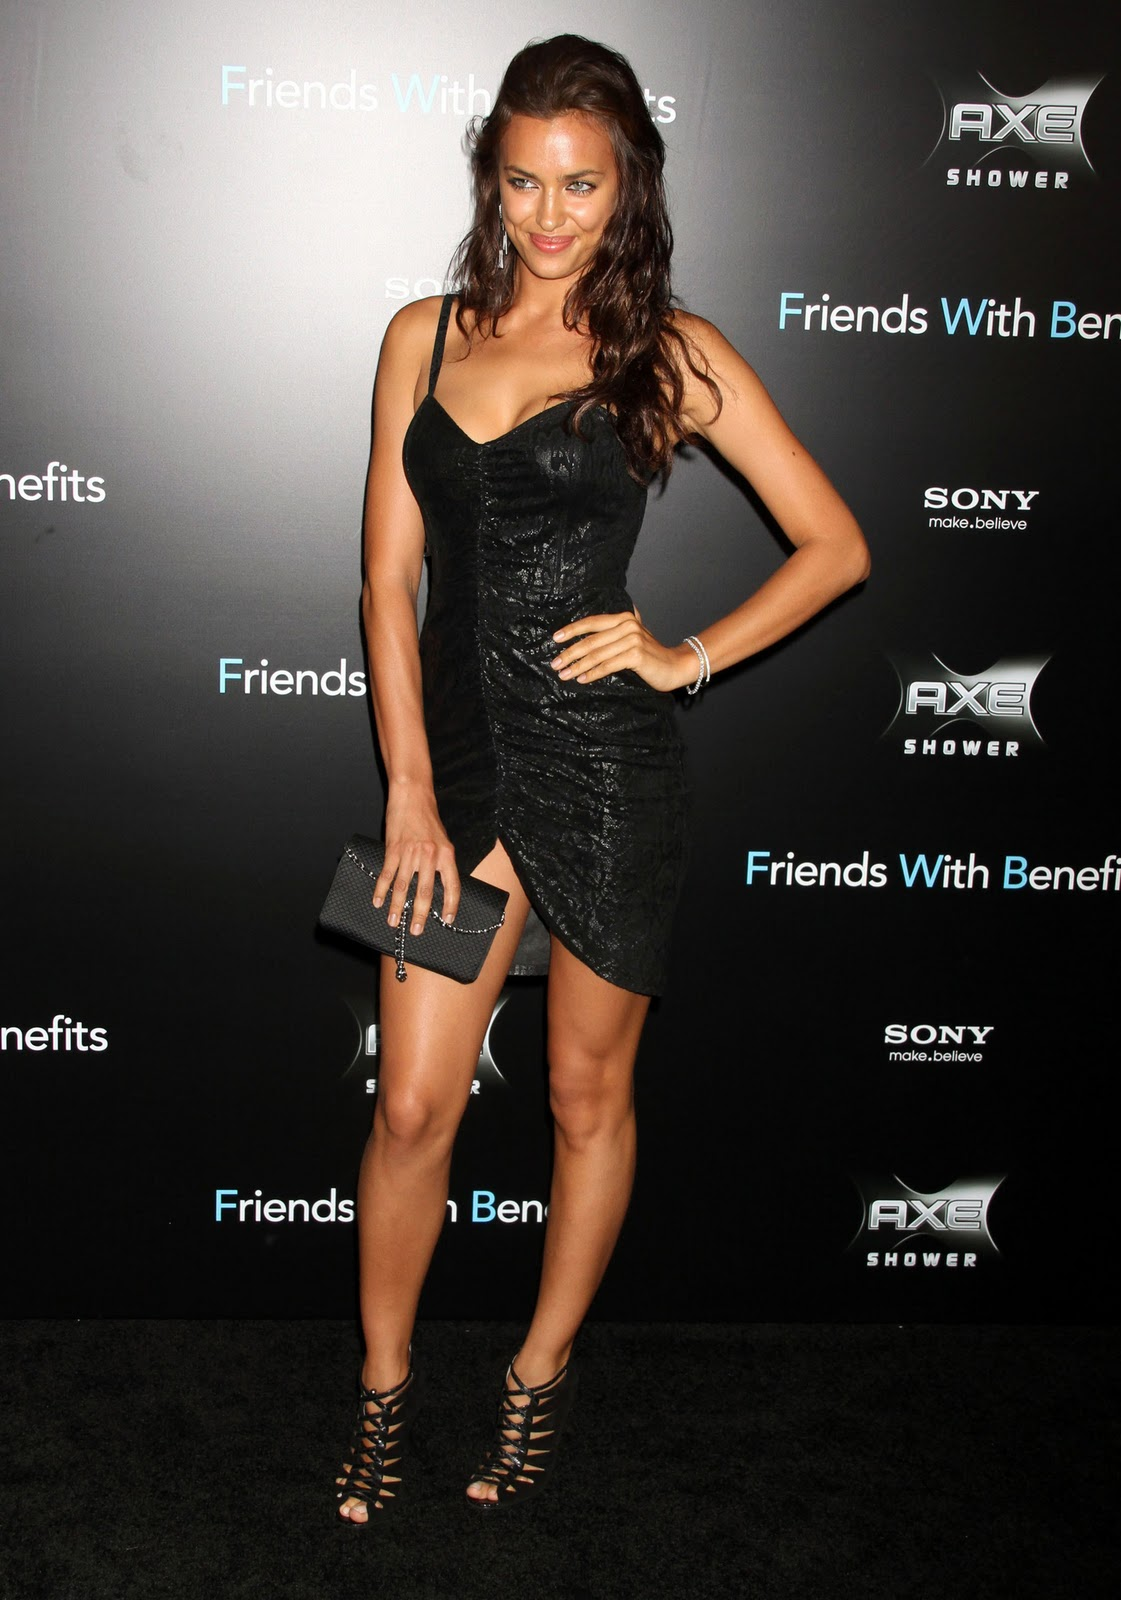 Black dress hairstyle - Irina Shayk Photoshoot In Black Dress 2012